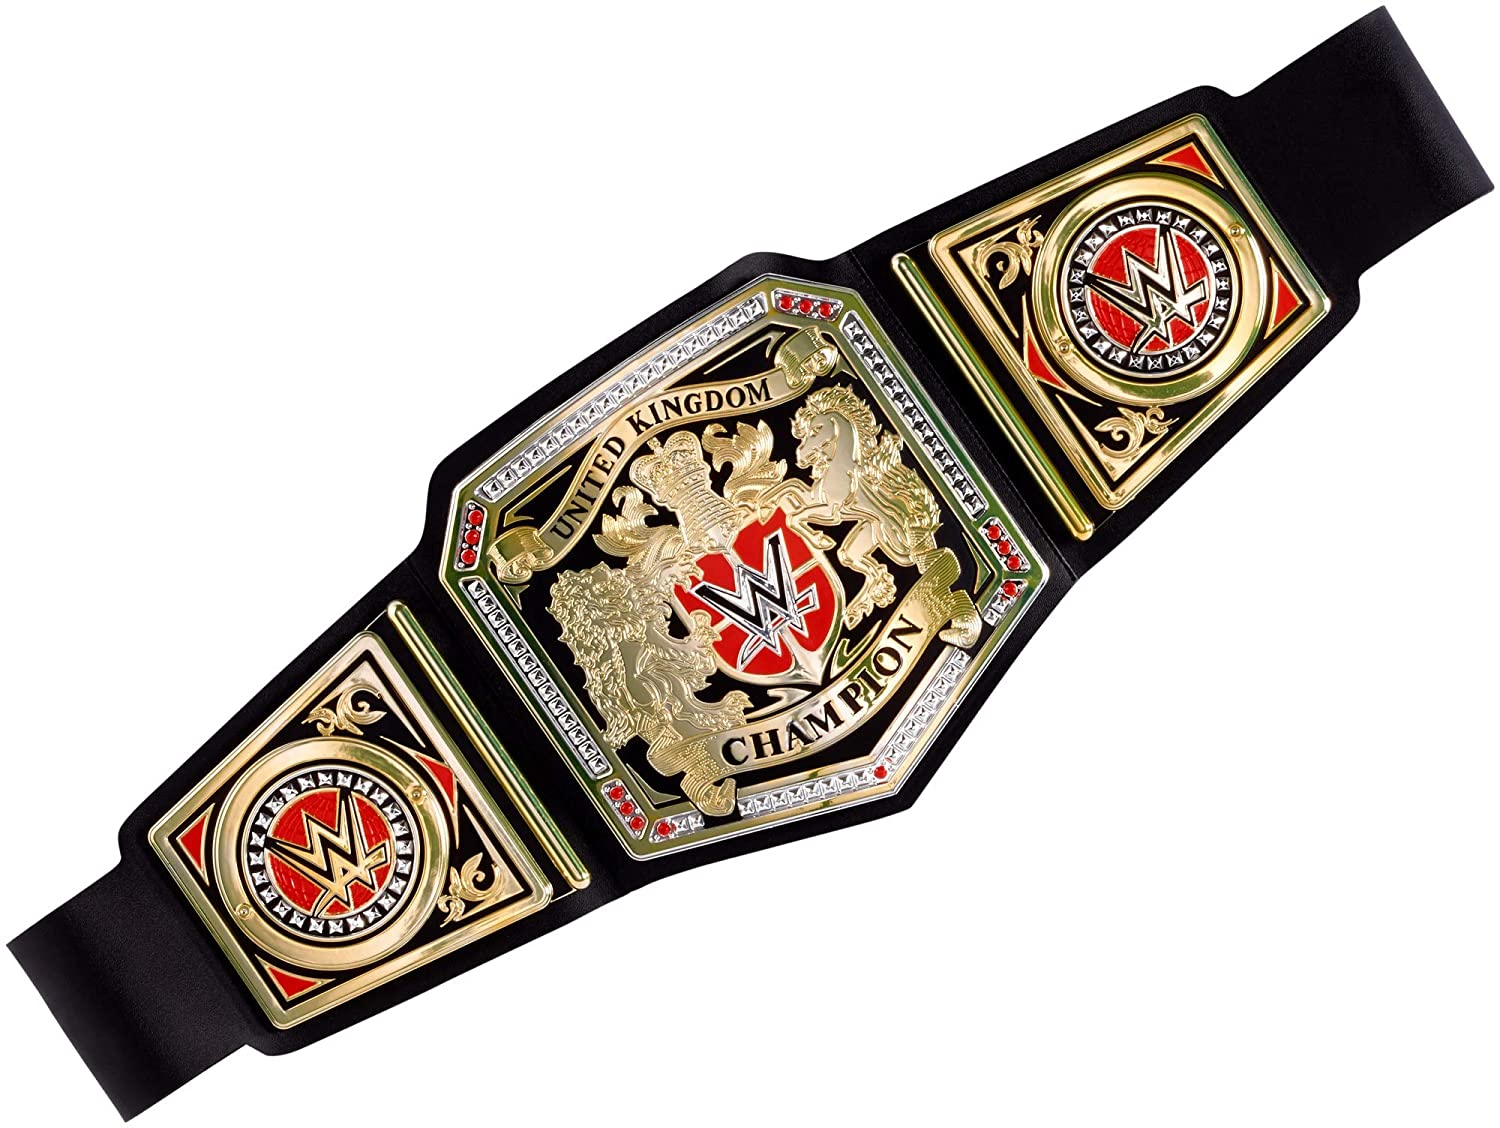 WWE The United Kingdom Championship UK Wrestling World Heavyweight Toy Title Belt - Made By Mattel Accessories Fancy Fress Up Costume Cosplay